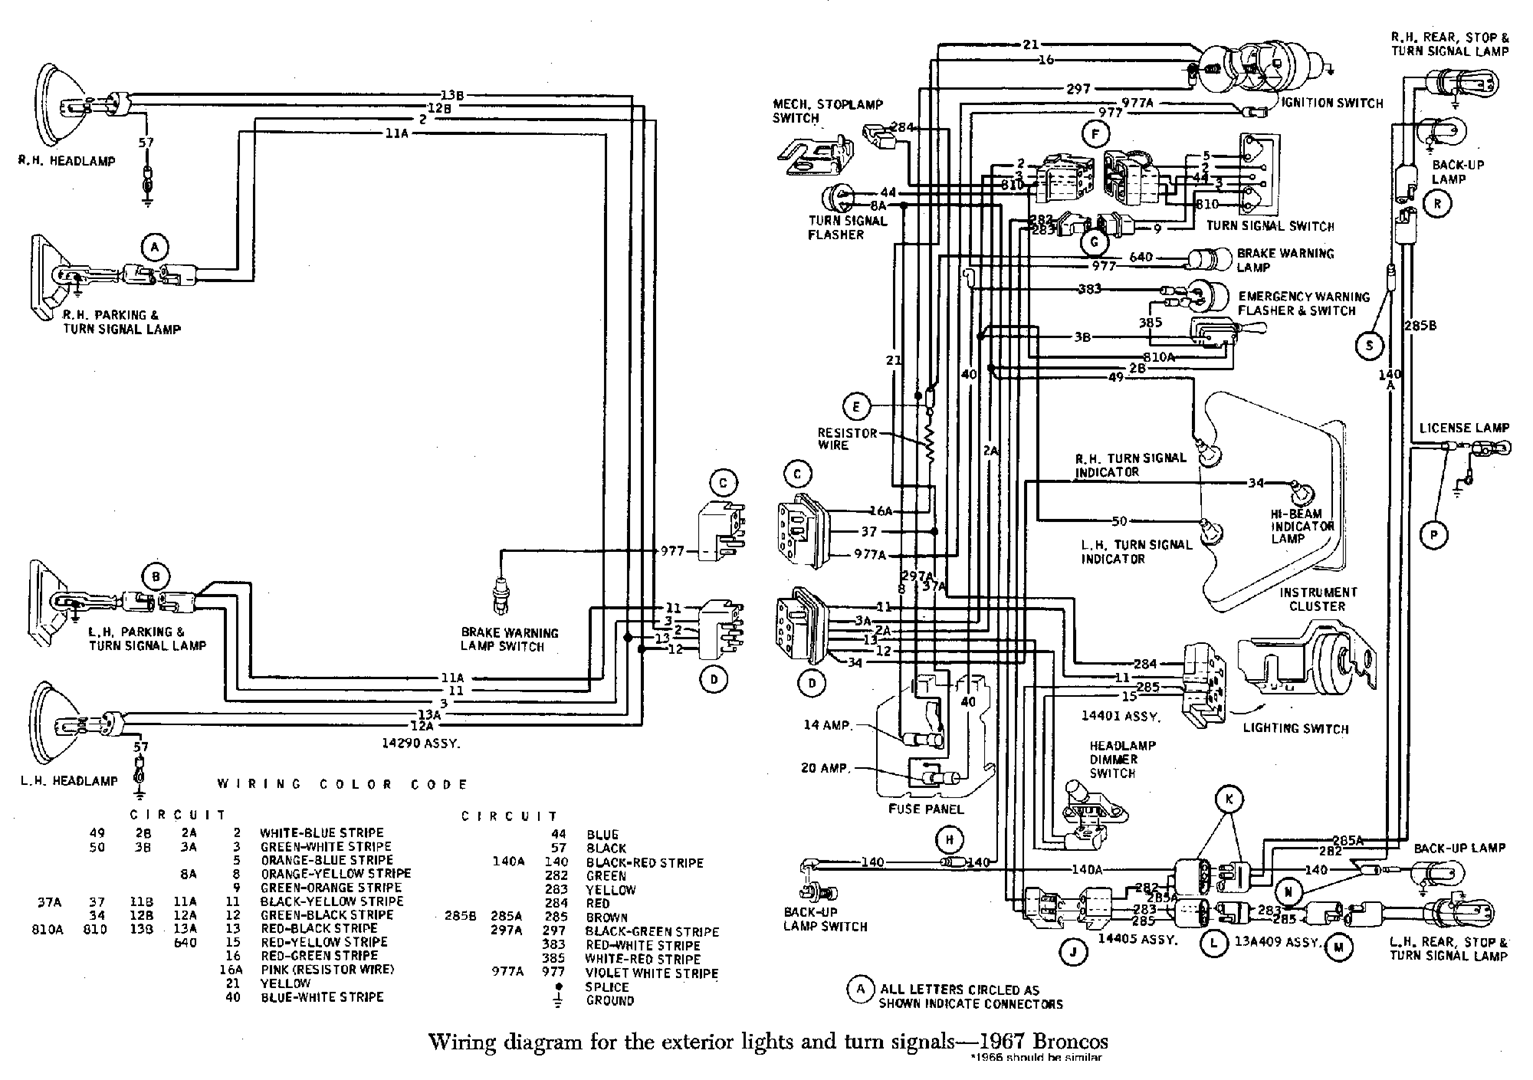 1950 Ford Coupe Wiring Diagram moreover Flathead drawings electrical further Vintage Engines moreover Flathead V8 Crate Engine together with Wiring Diagram For 1951 Ford. on 1951 f1 ford truck wiring diagrams